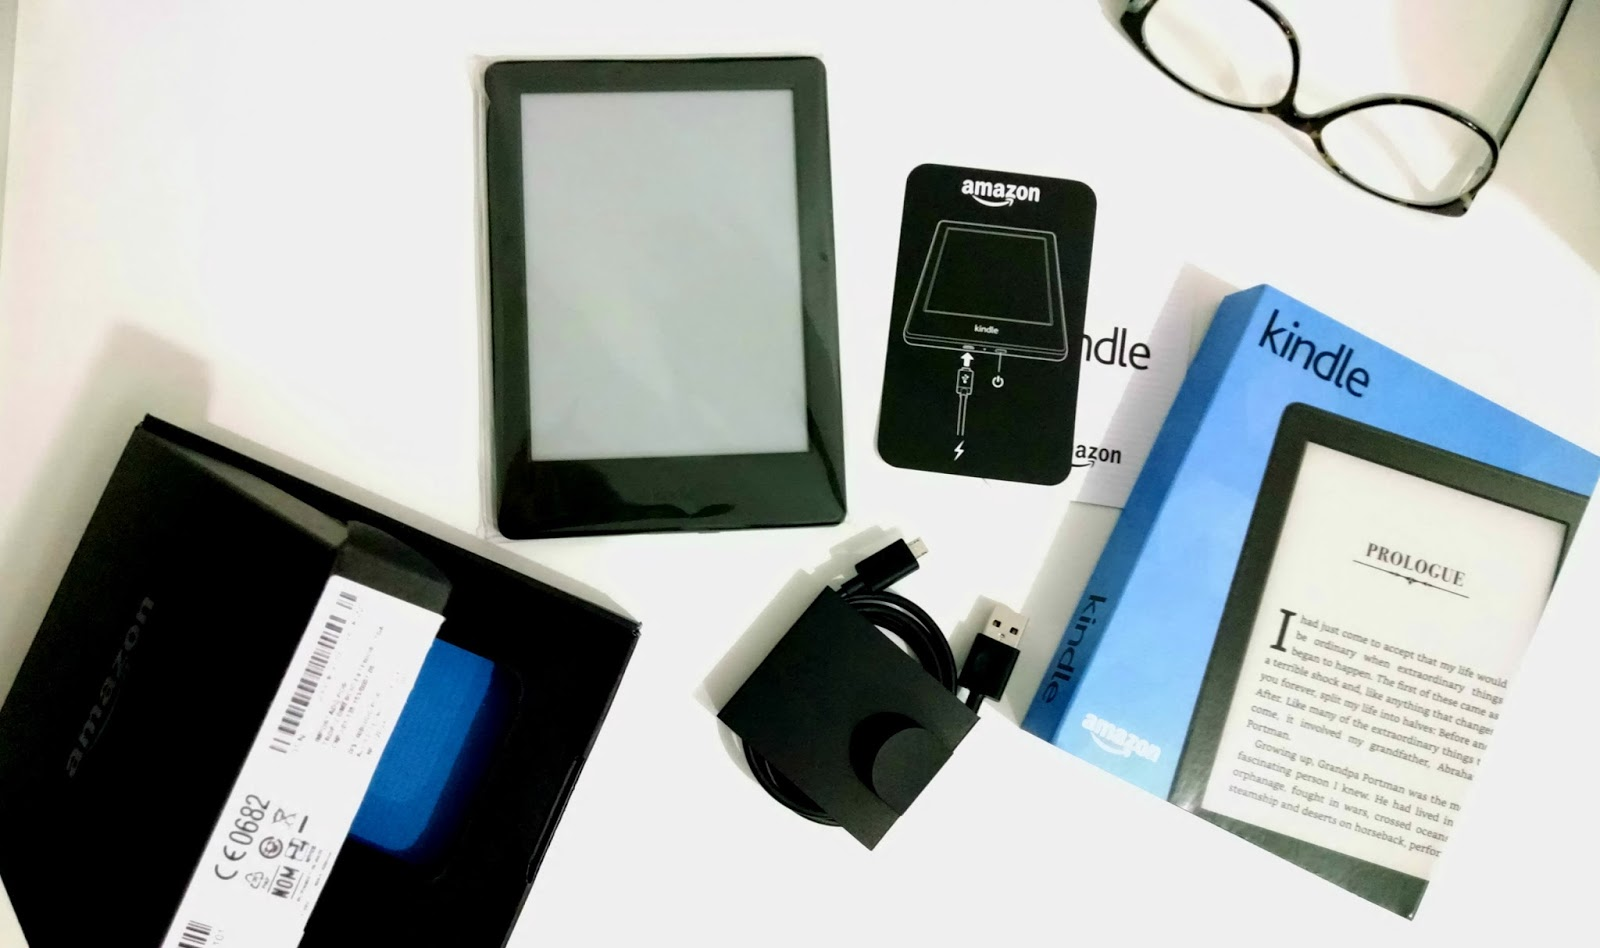 Unboxing kindle, Unboxing kindle, Unboxing kindle,